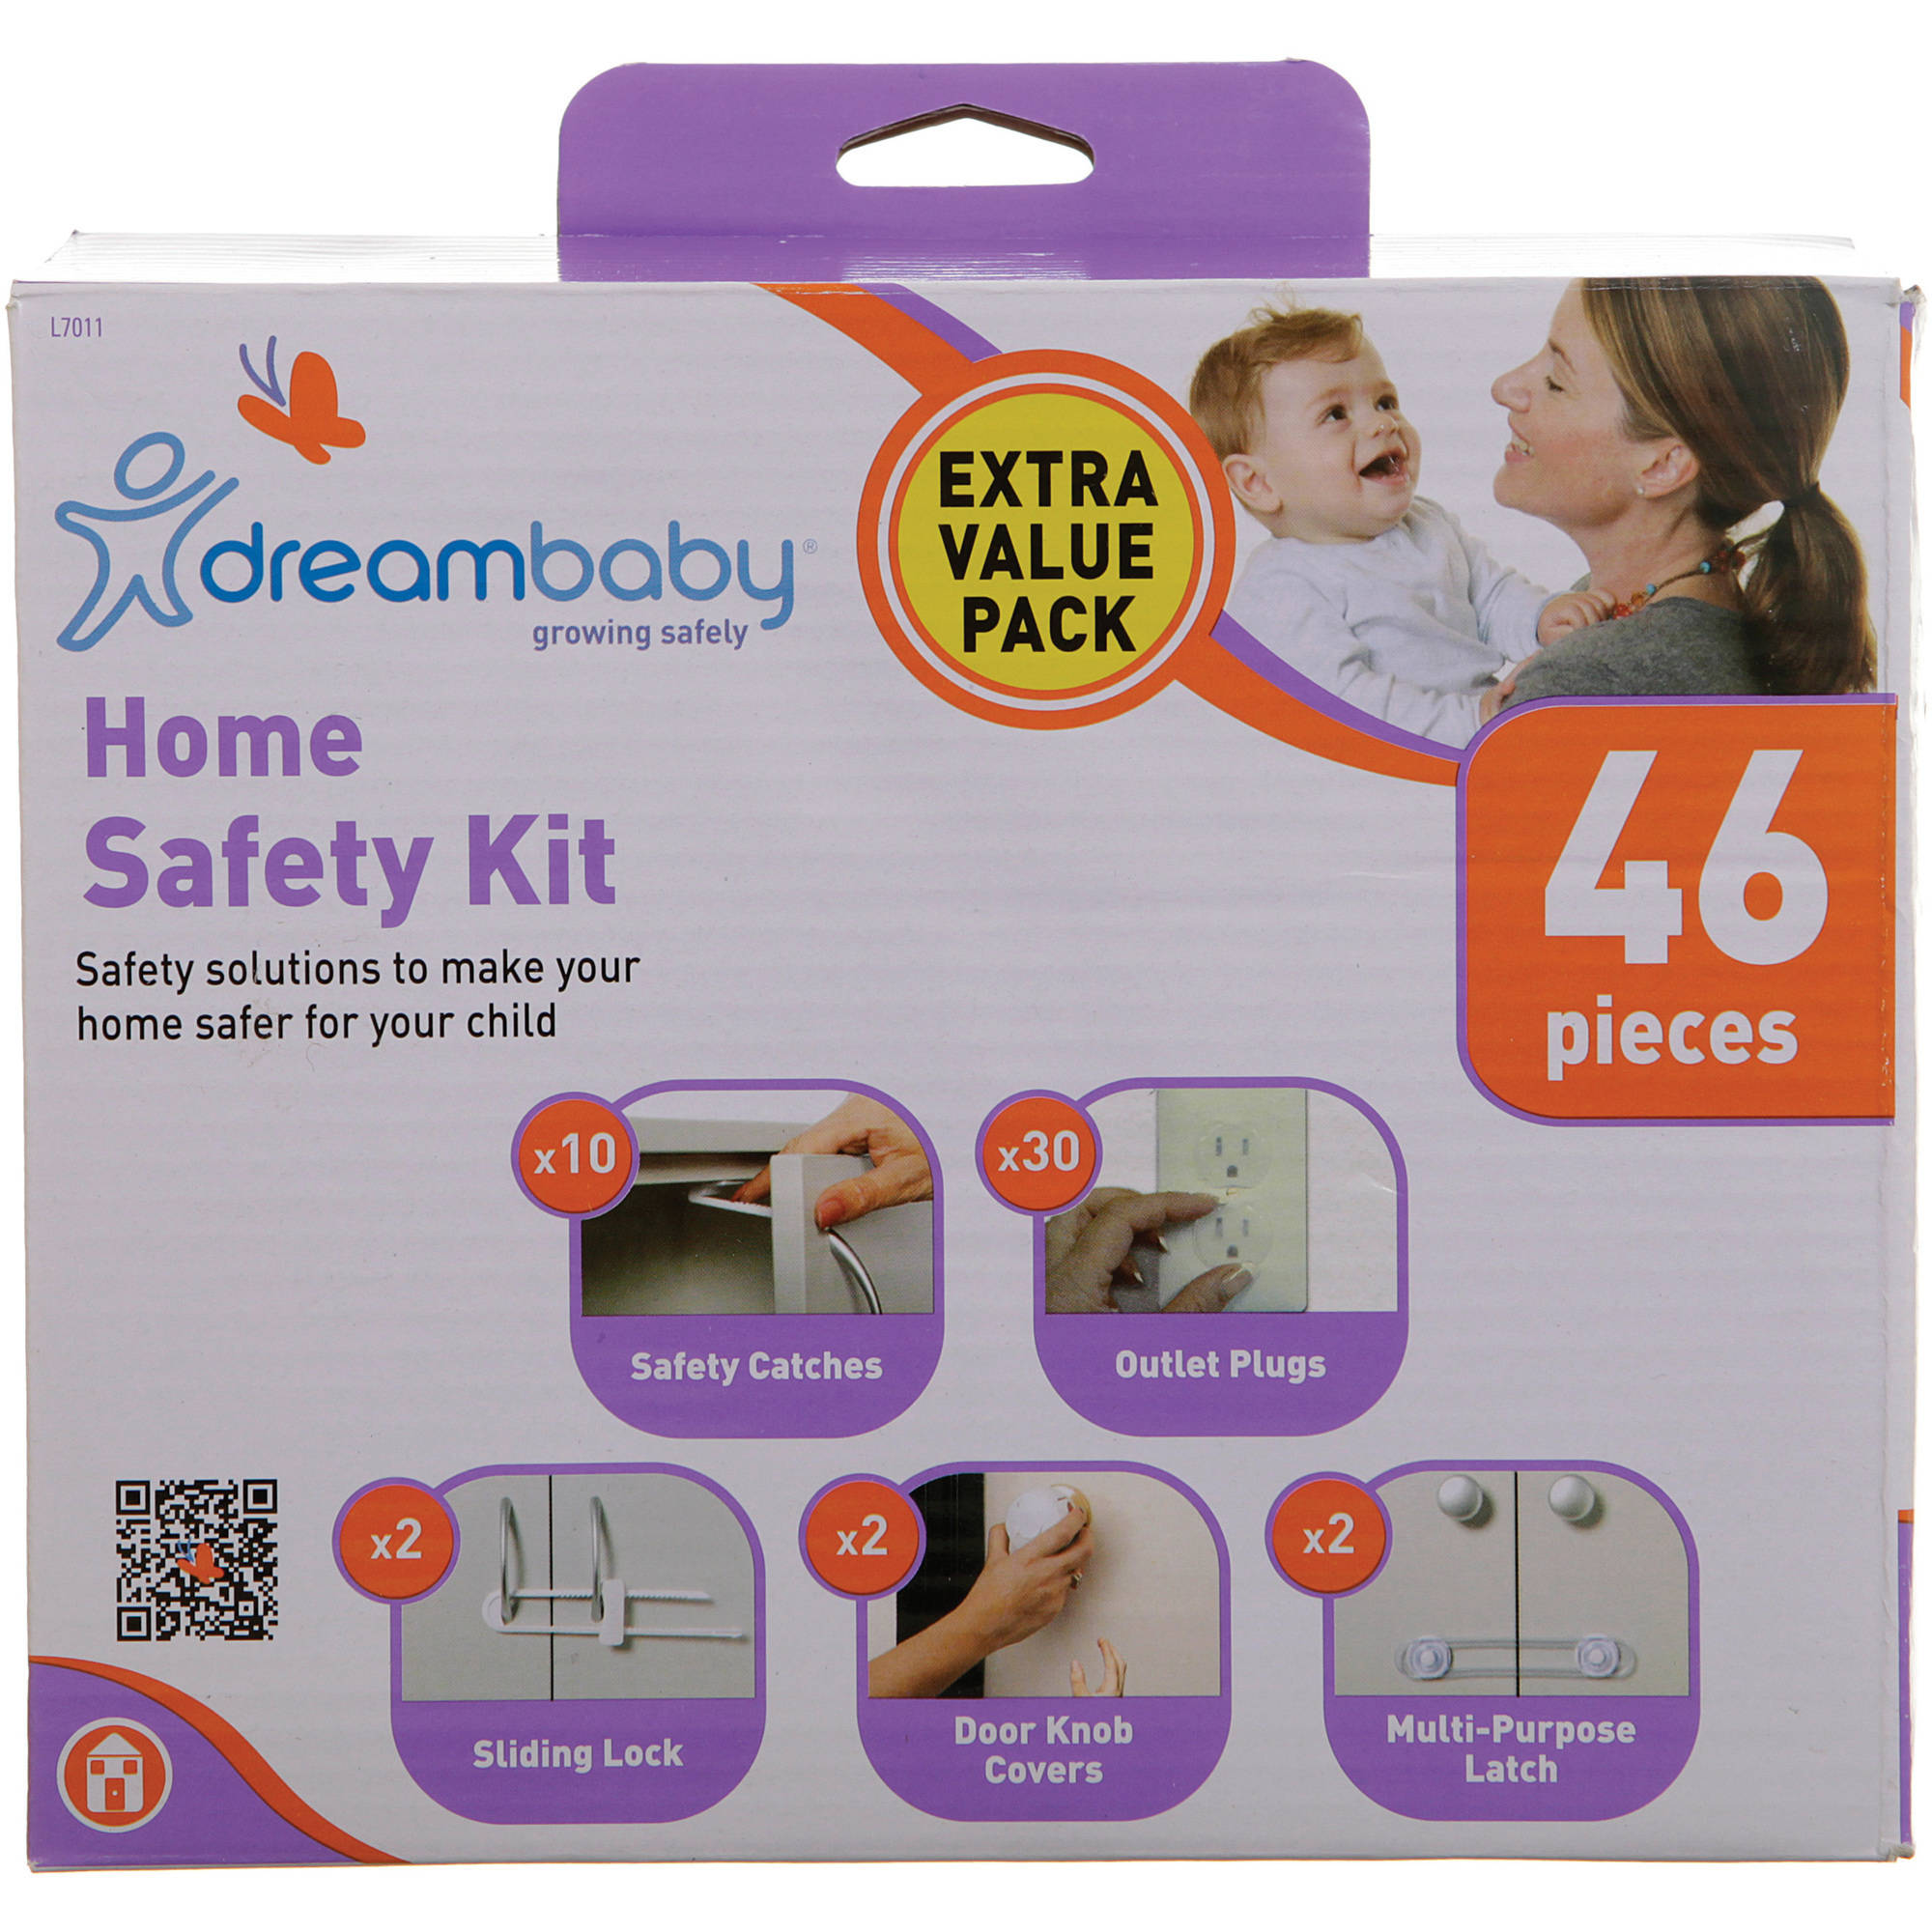 Dreambaby Home Safety Kit, 46 Pieces